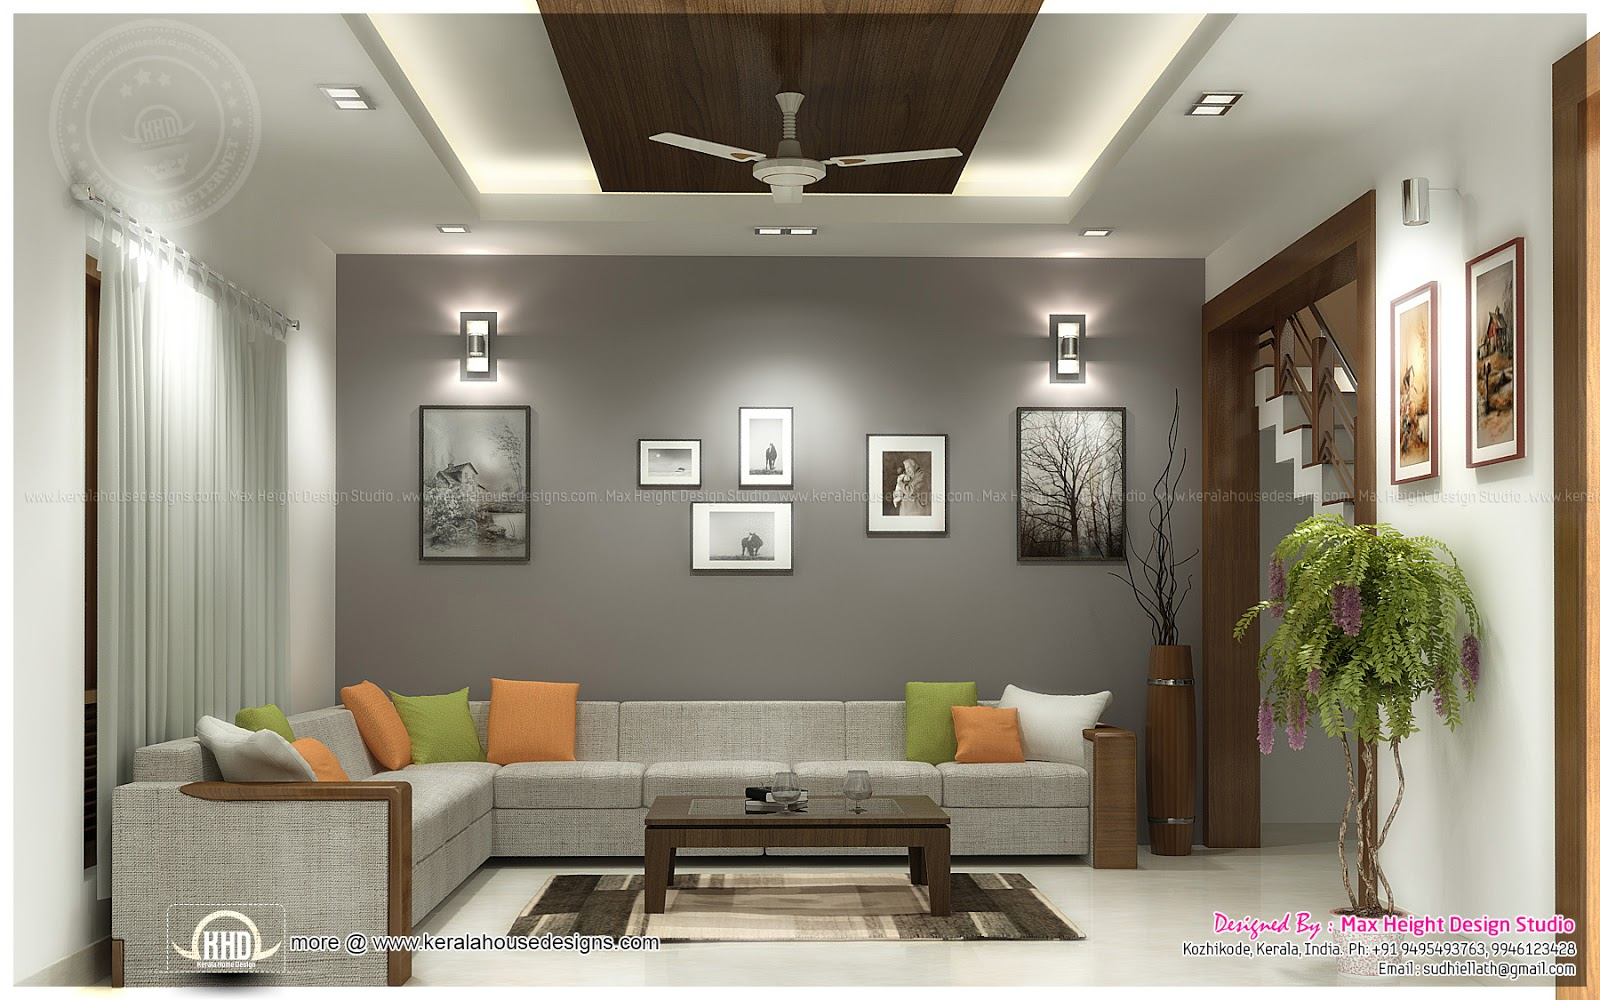 Beautiful interior ideas for home kerala home design and Drawing room interior design photos